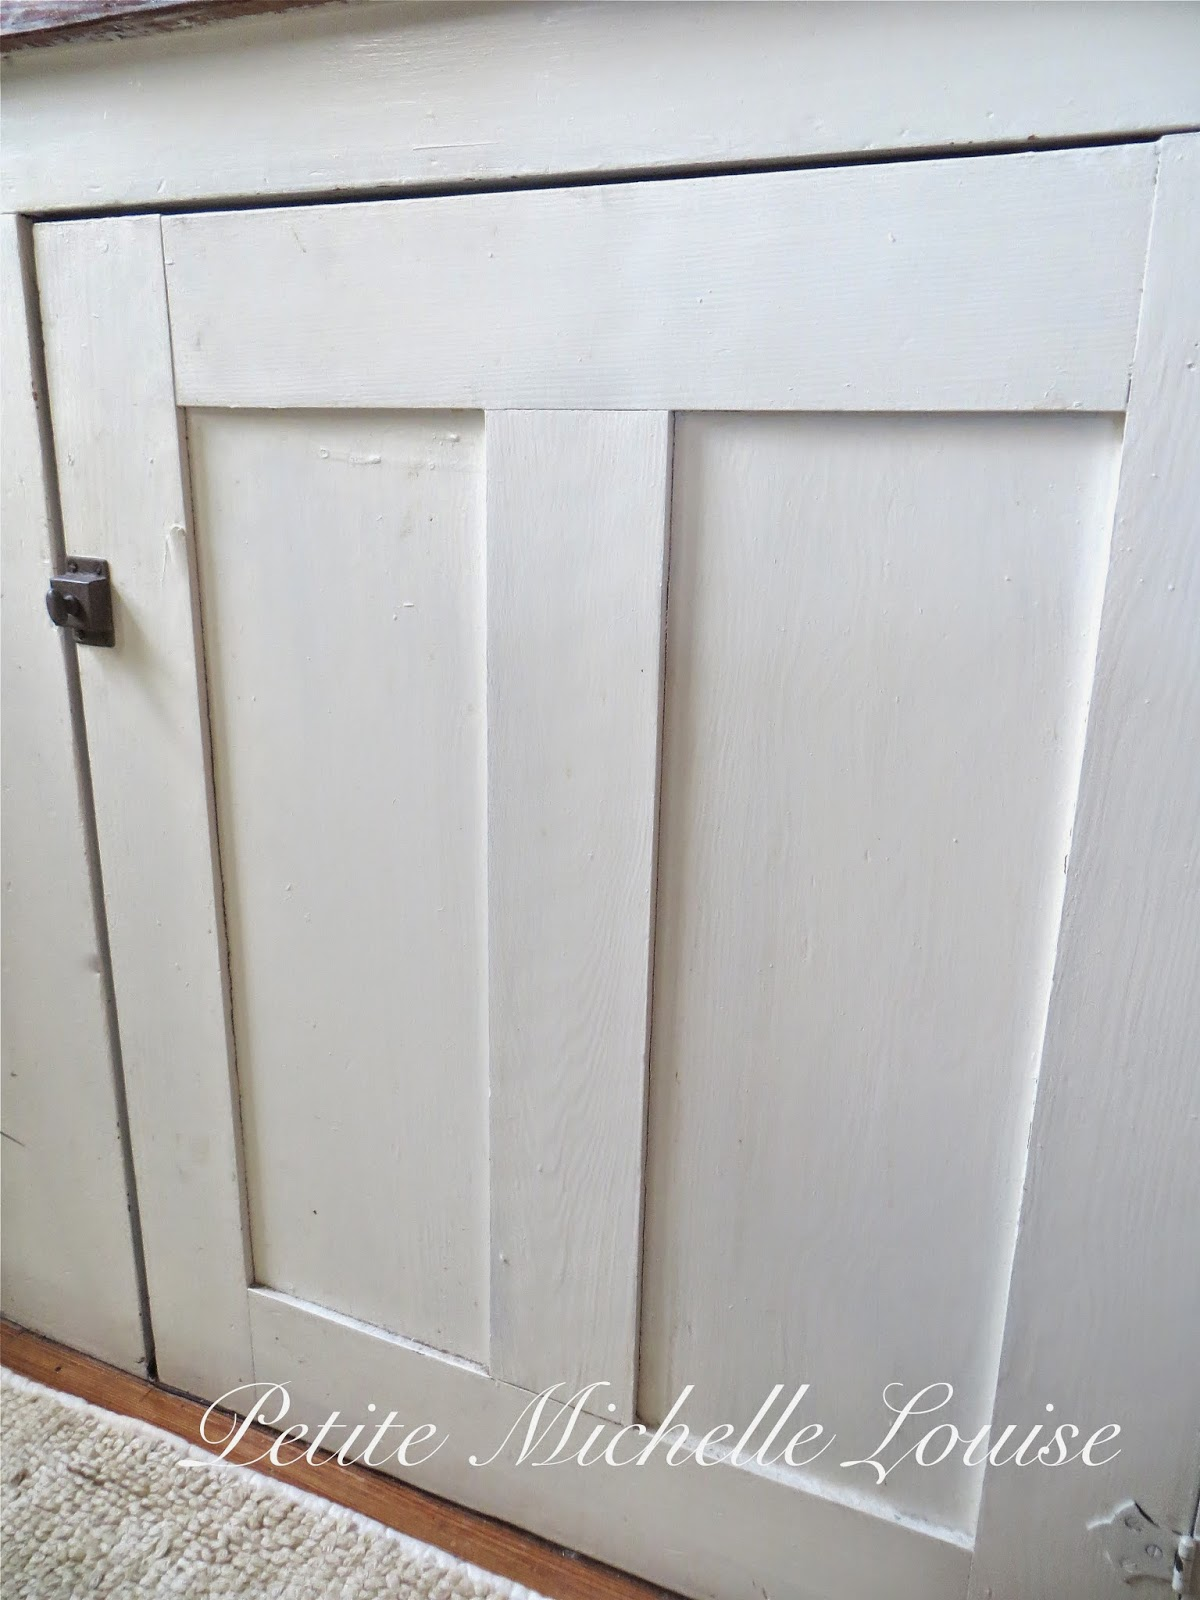 Diy Vanity Doors Petite Michelle Louise Diy Cabinet Door Facelift